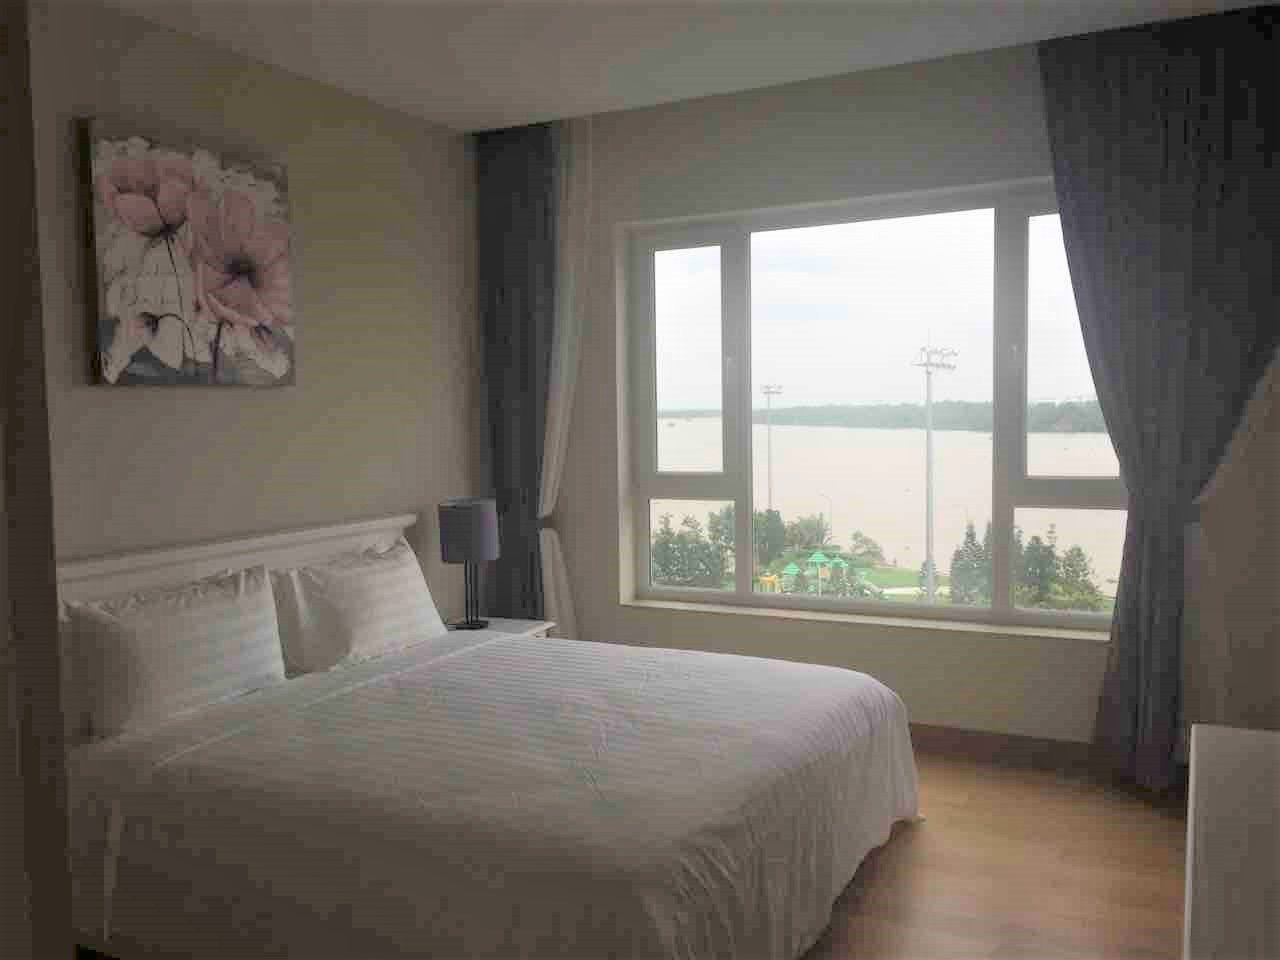 Apartment for rent D210220 (4)